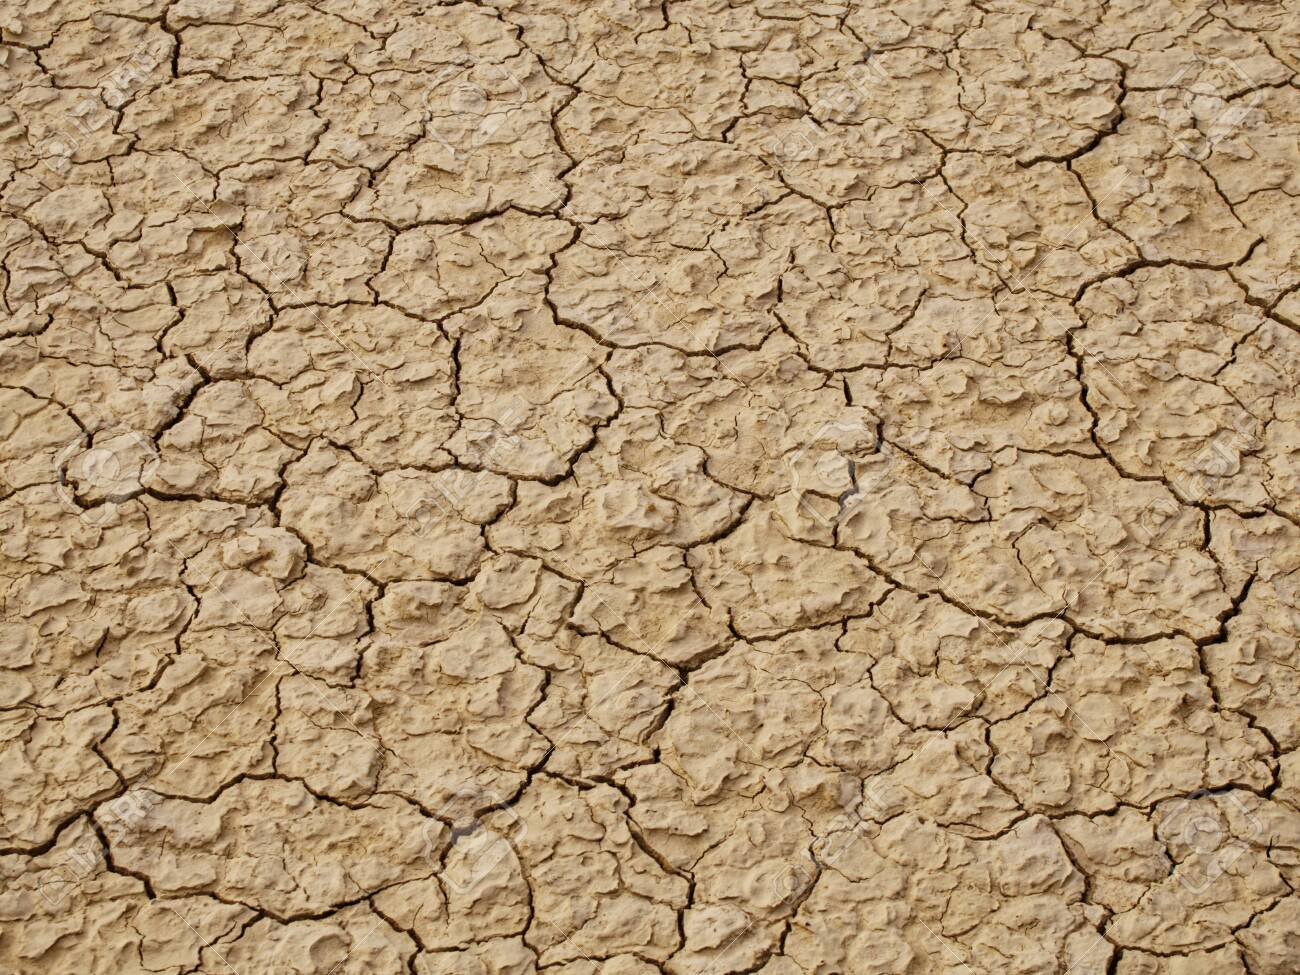 Cracked thin layer of earth in the hot steppes of Kazakhstan. - 137025866